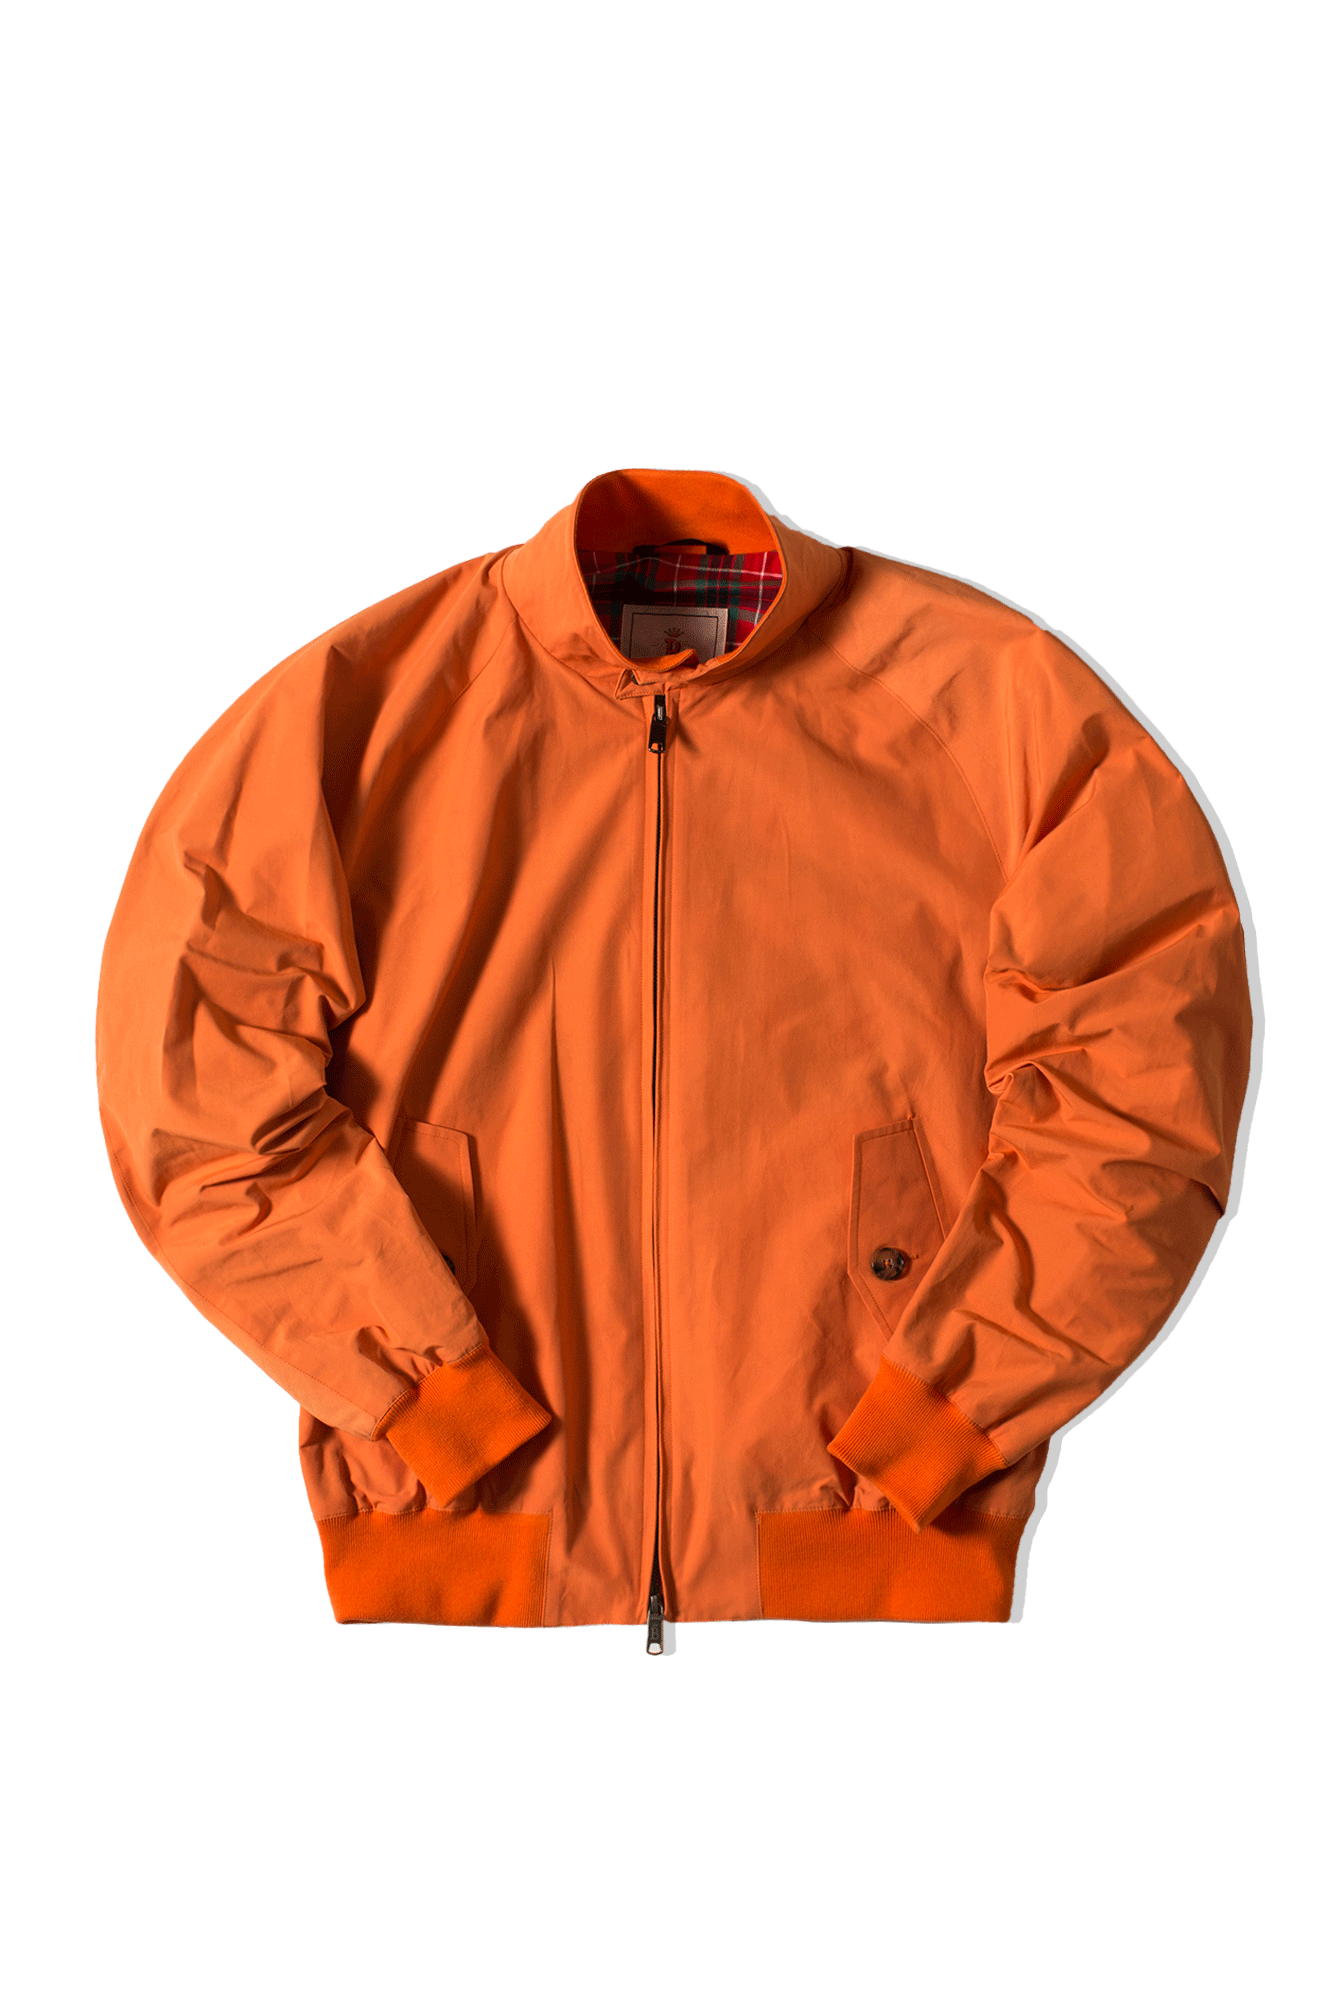 G9 Baracuta Cloth Orange